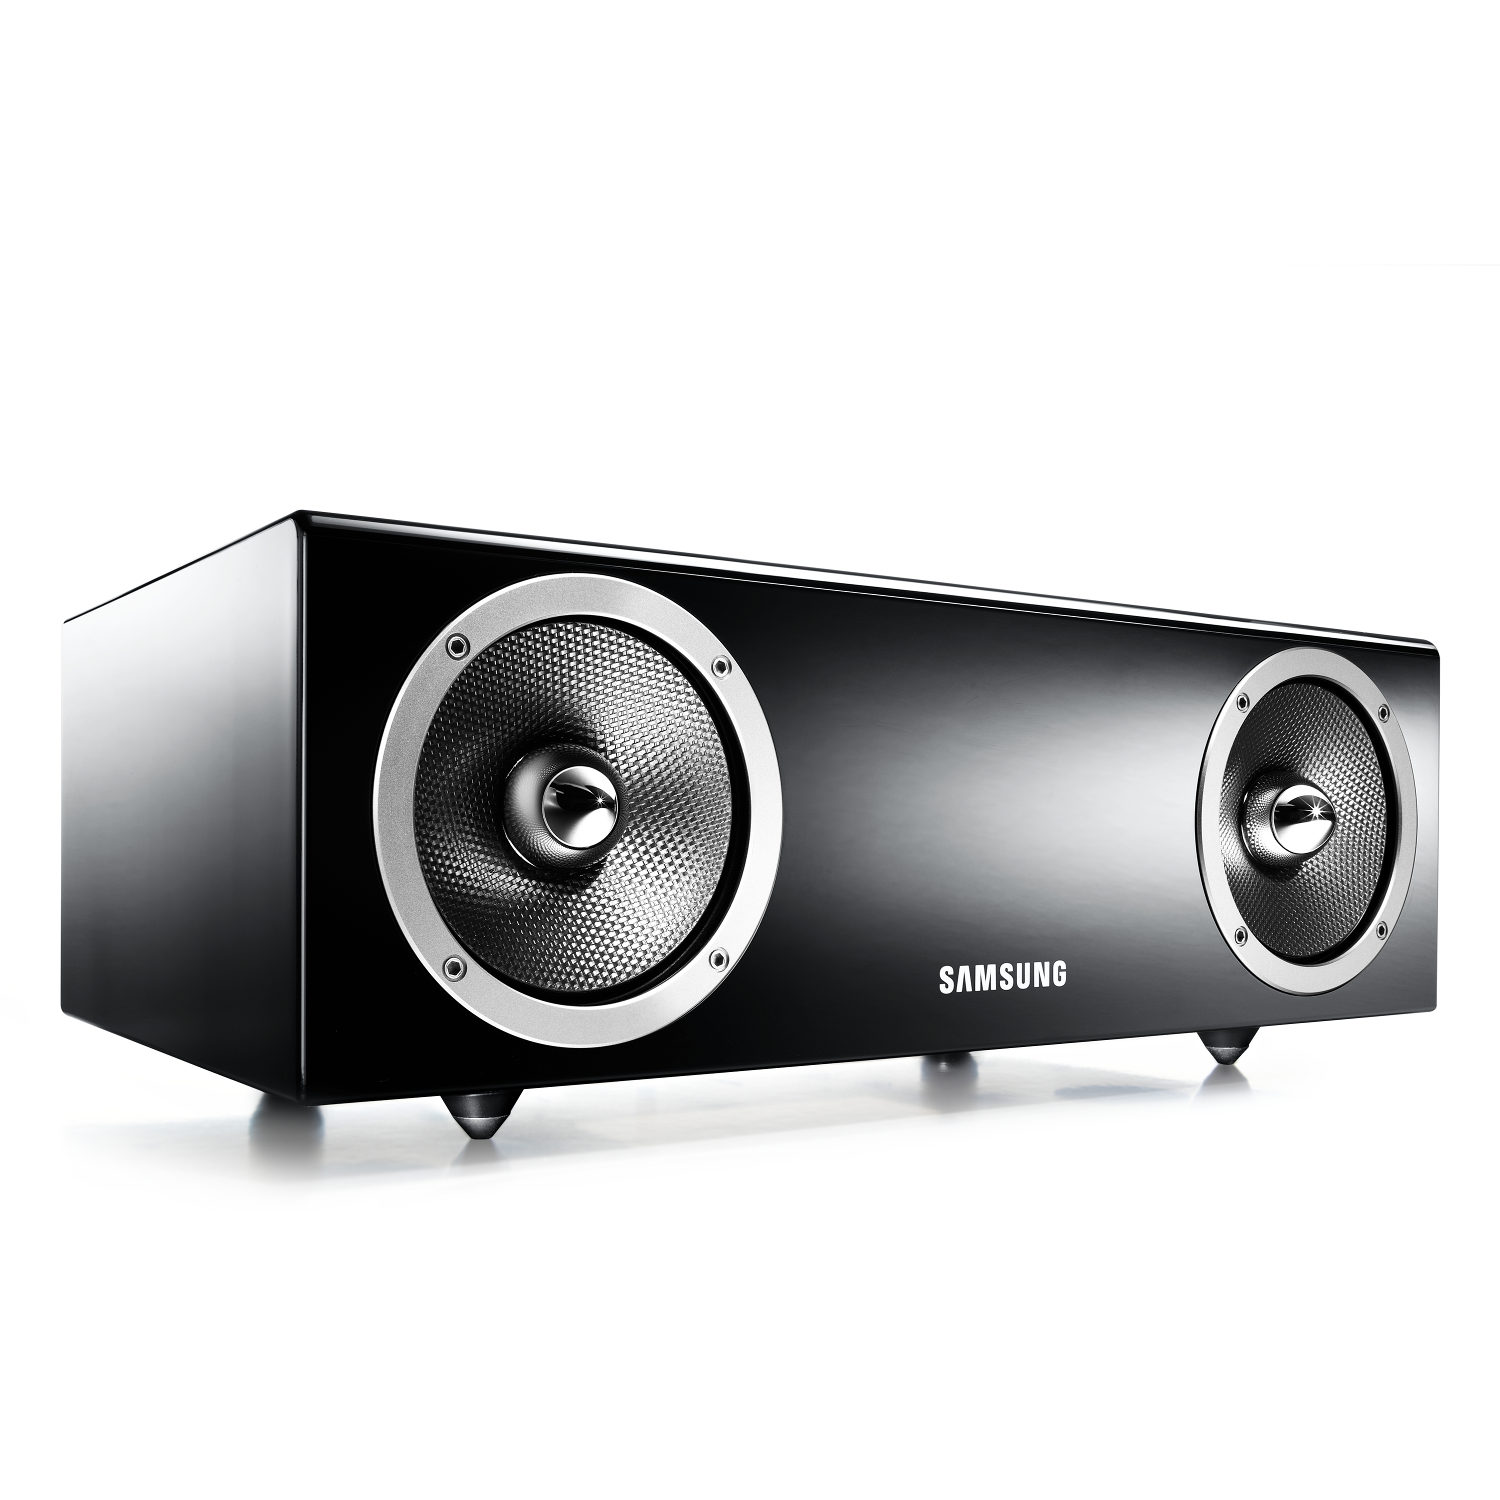 samsung da e570 dock enceinte bluetooth samsung sur. Black Bedroom Furniture Sets. Home Design Ideas